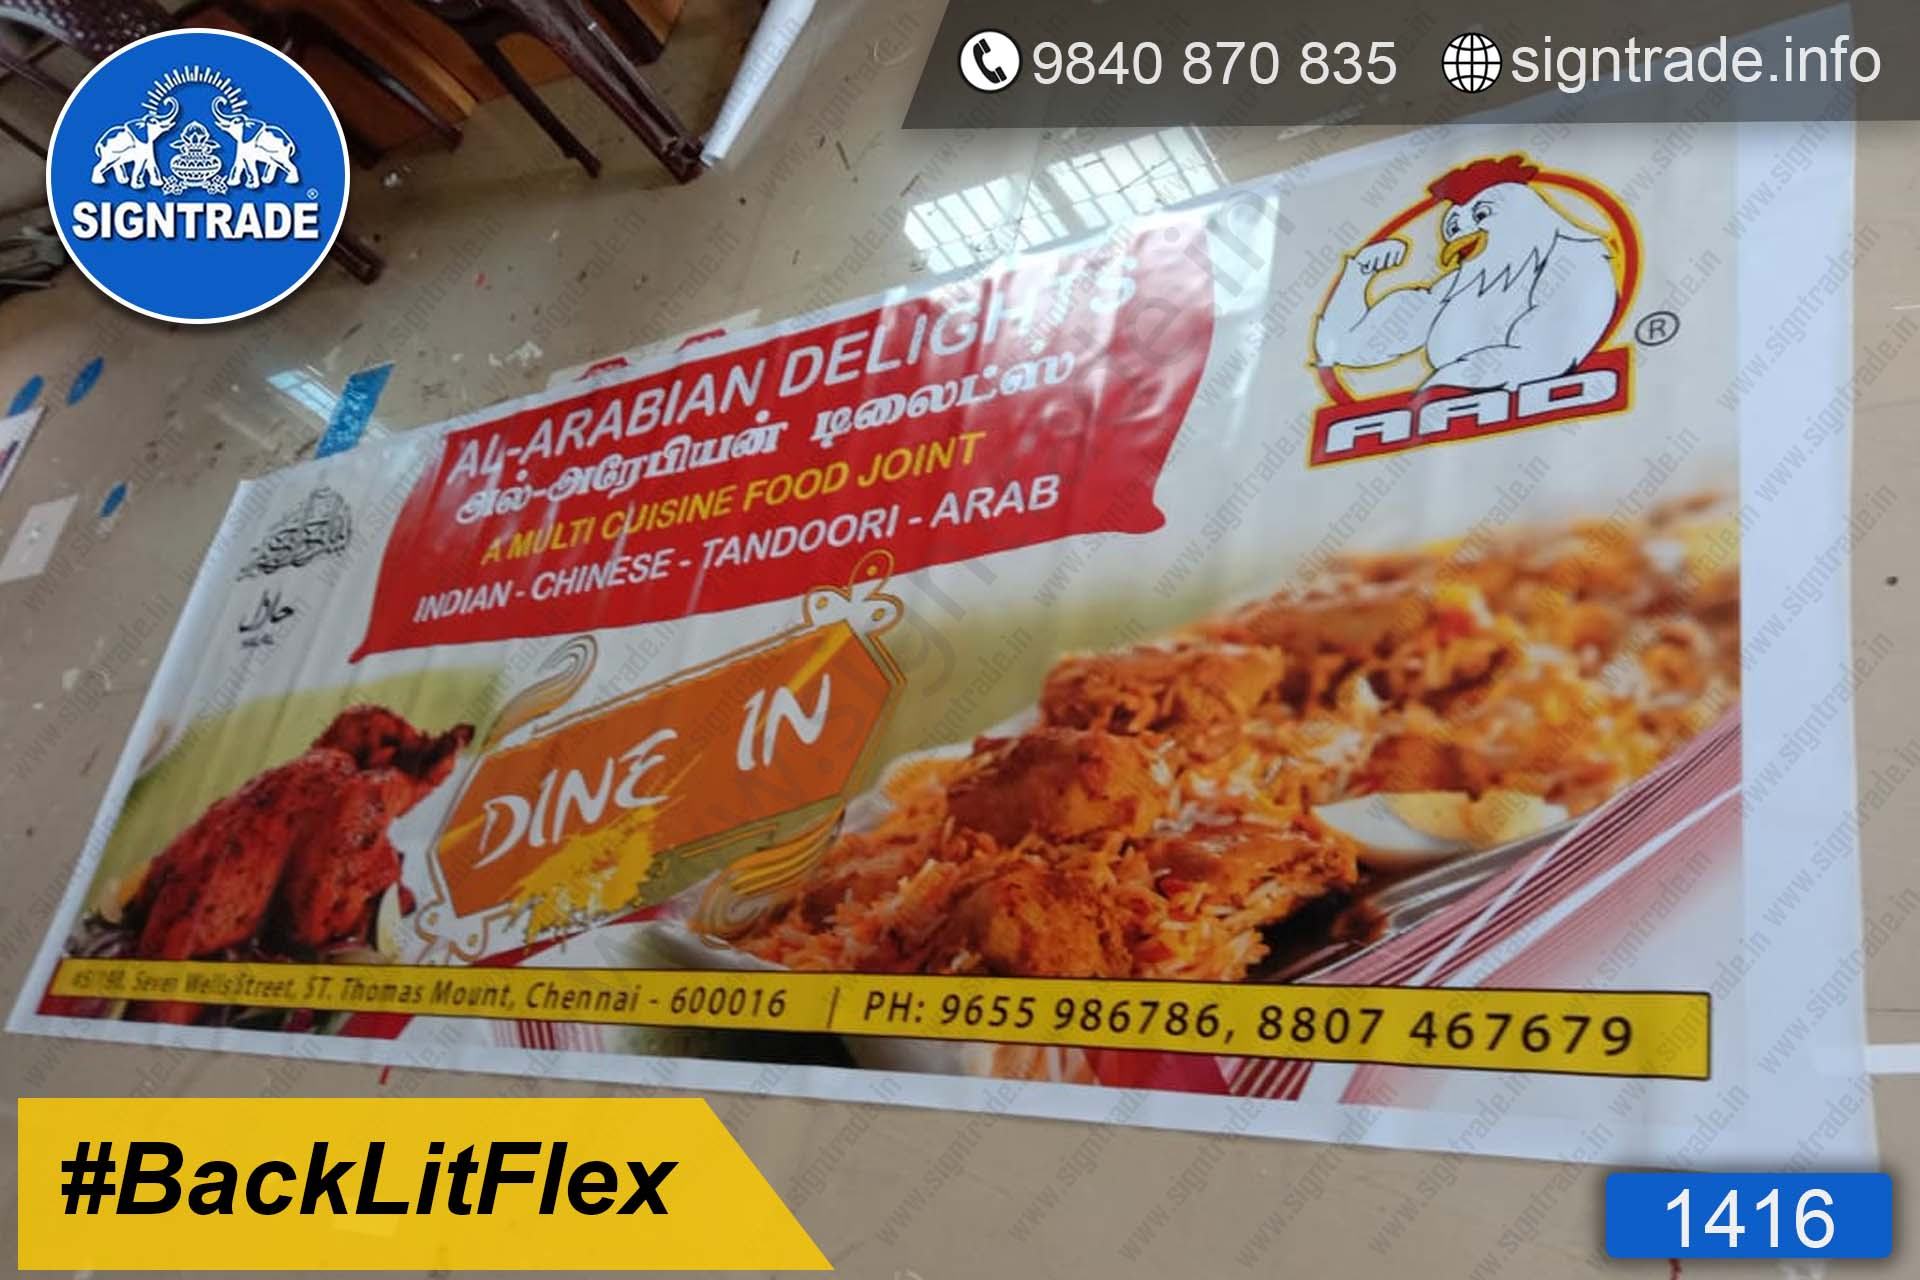 Al Arabian Delights Restaurant - 1416, Flex Board, Backlit Flex Board, Star Backlit Flex Board, Backlit Flex Banners, Shop Front Flex Board, Shop Flex Board